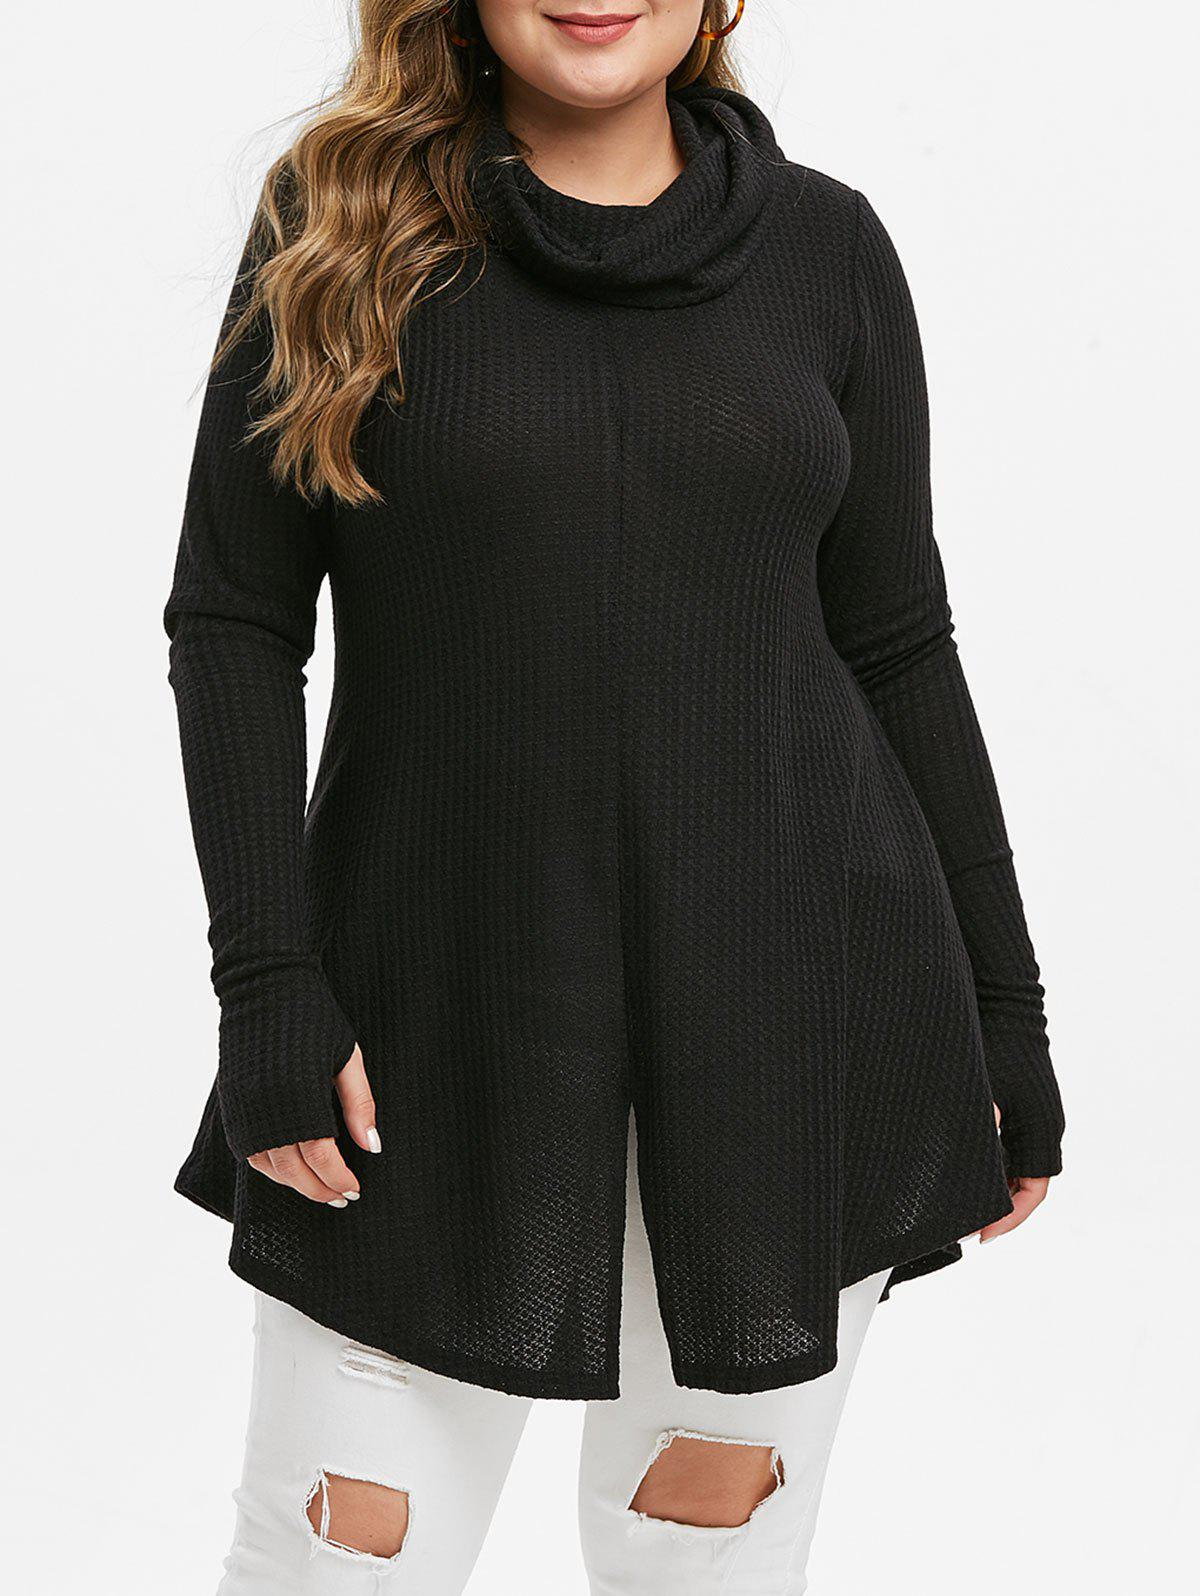 Plus Size Cowl Neck Slit Tunic Knitwear - BLACK L